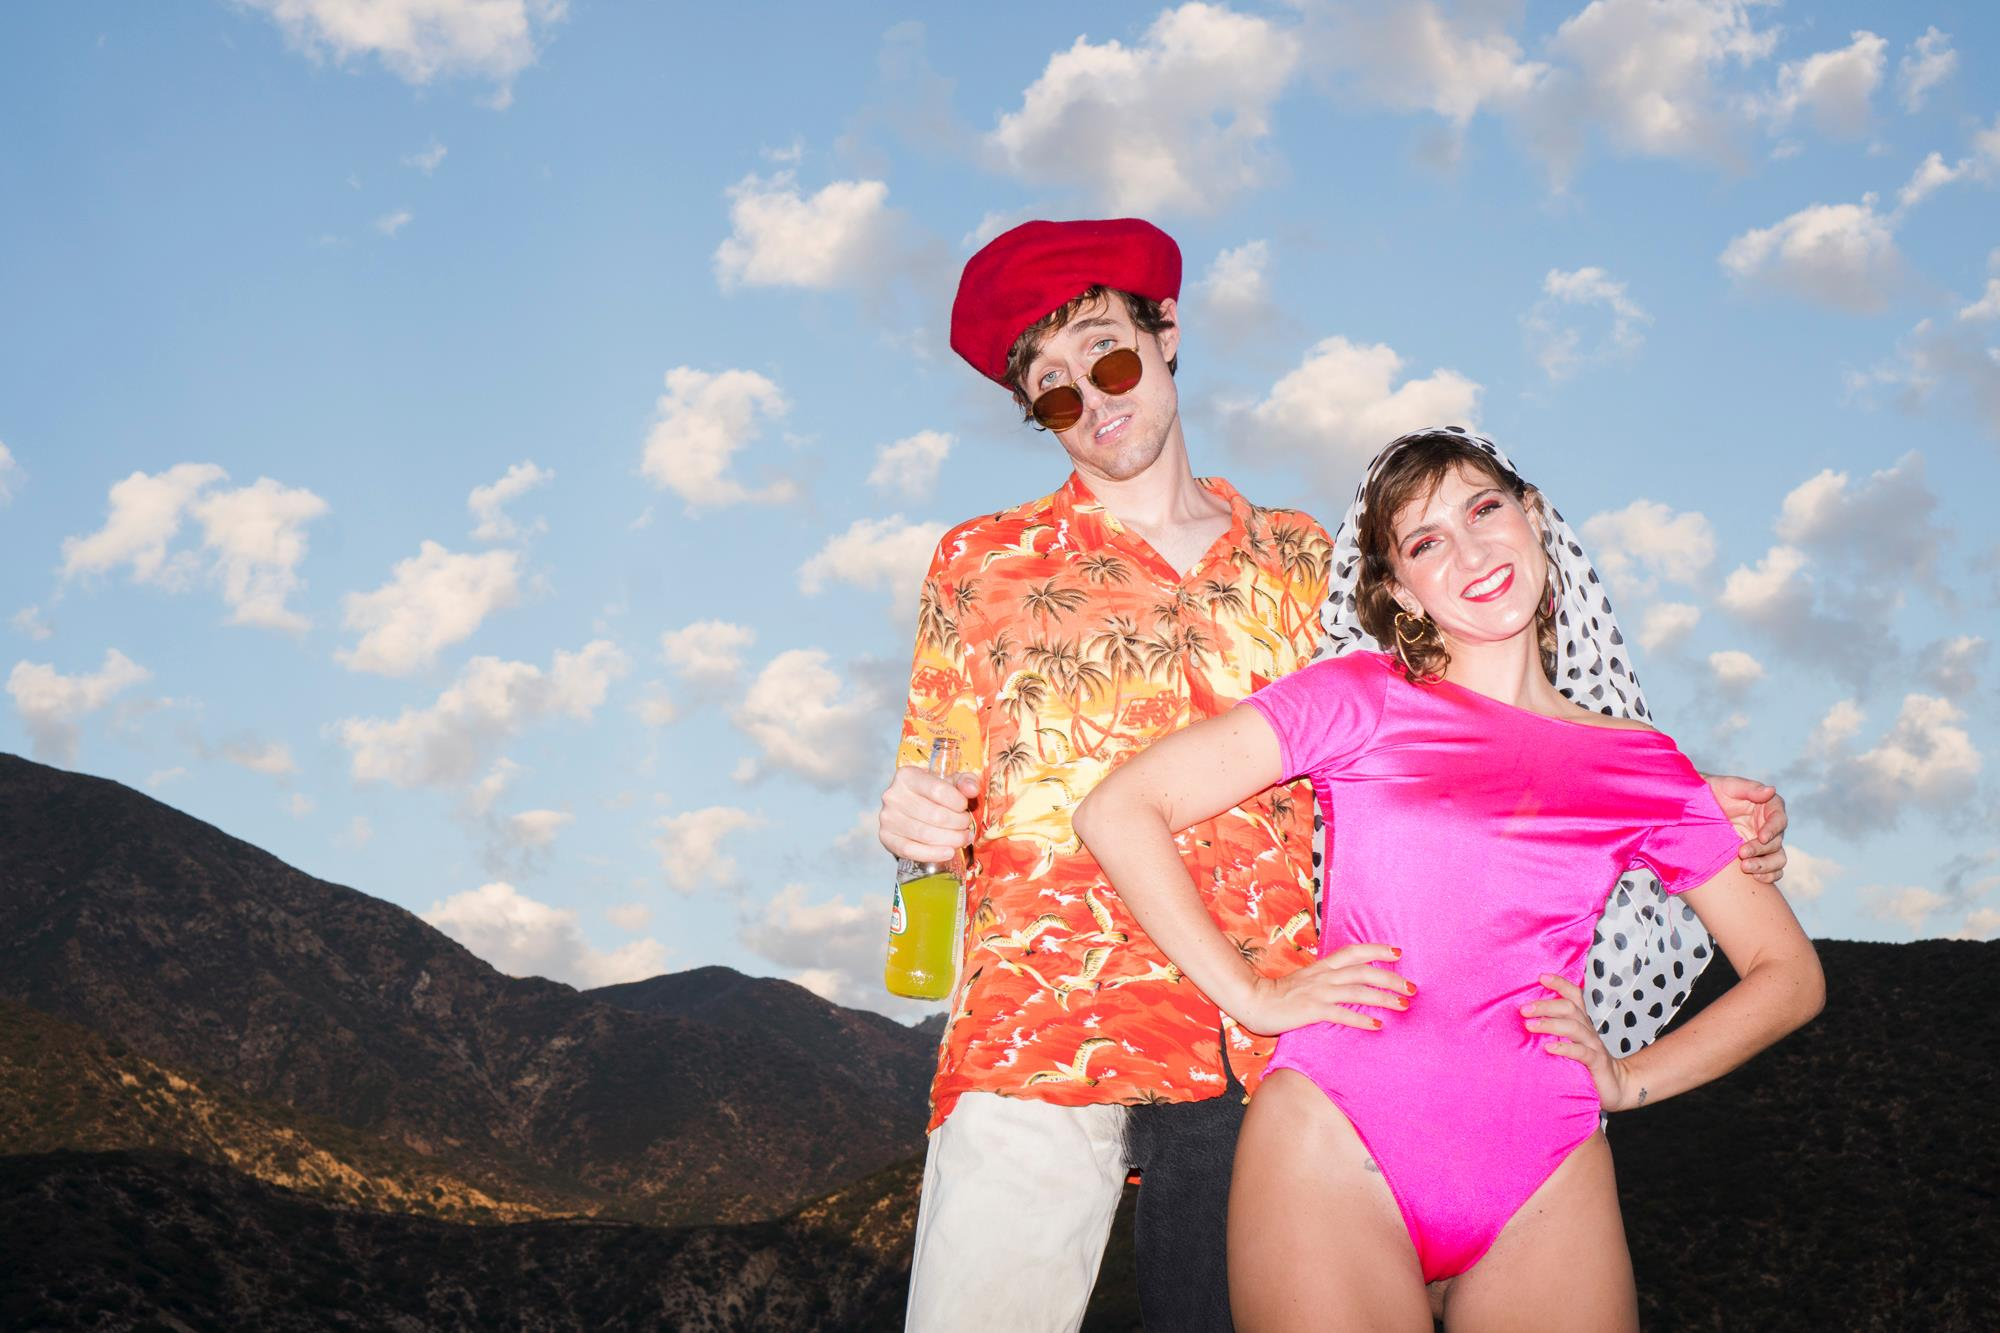 listen - hundred thousand years - by - holychild - indie music - new music - indie pop - music blog - indie blog - wolf in a suit - wolfinasuit - wolf in a suit blog - wolf in a suit music blog